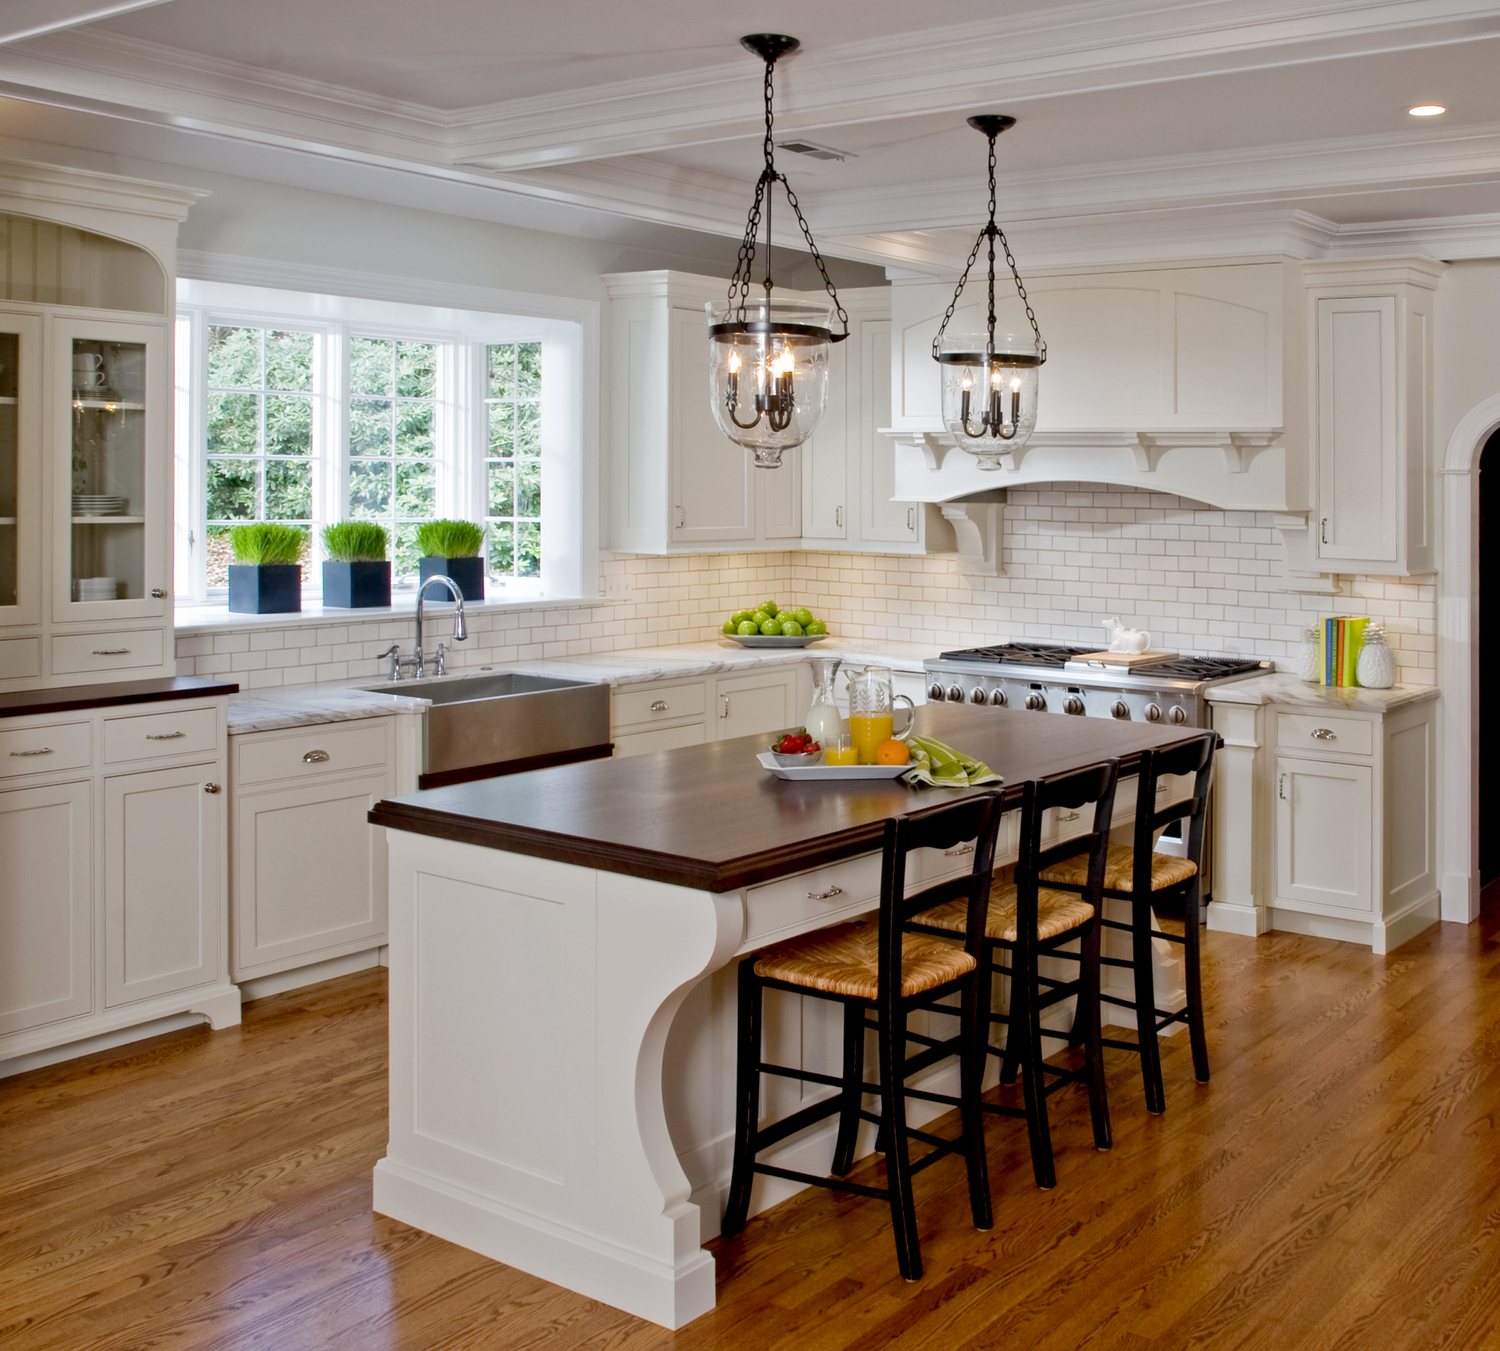 newtown custom cabinetry